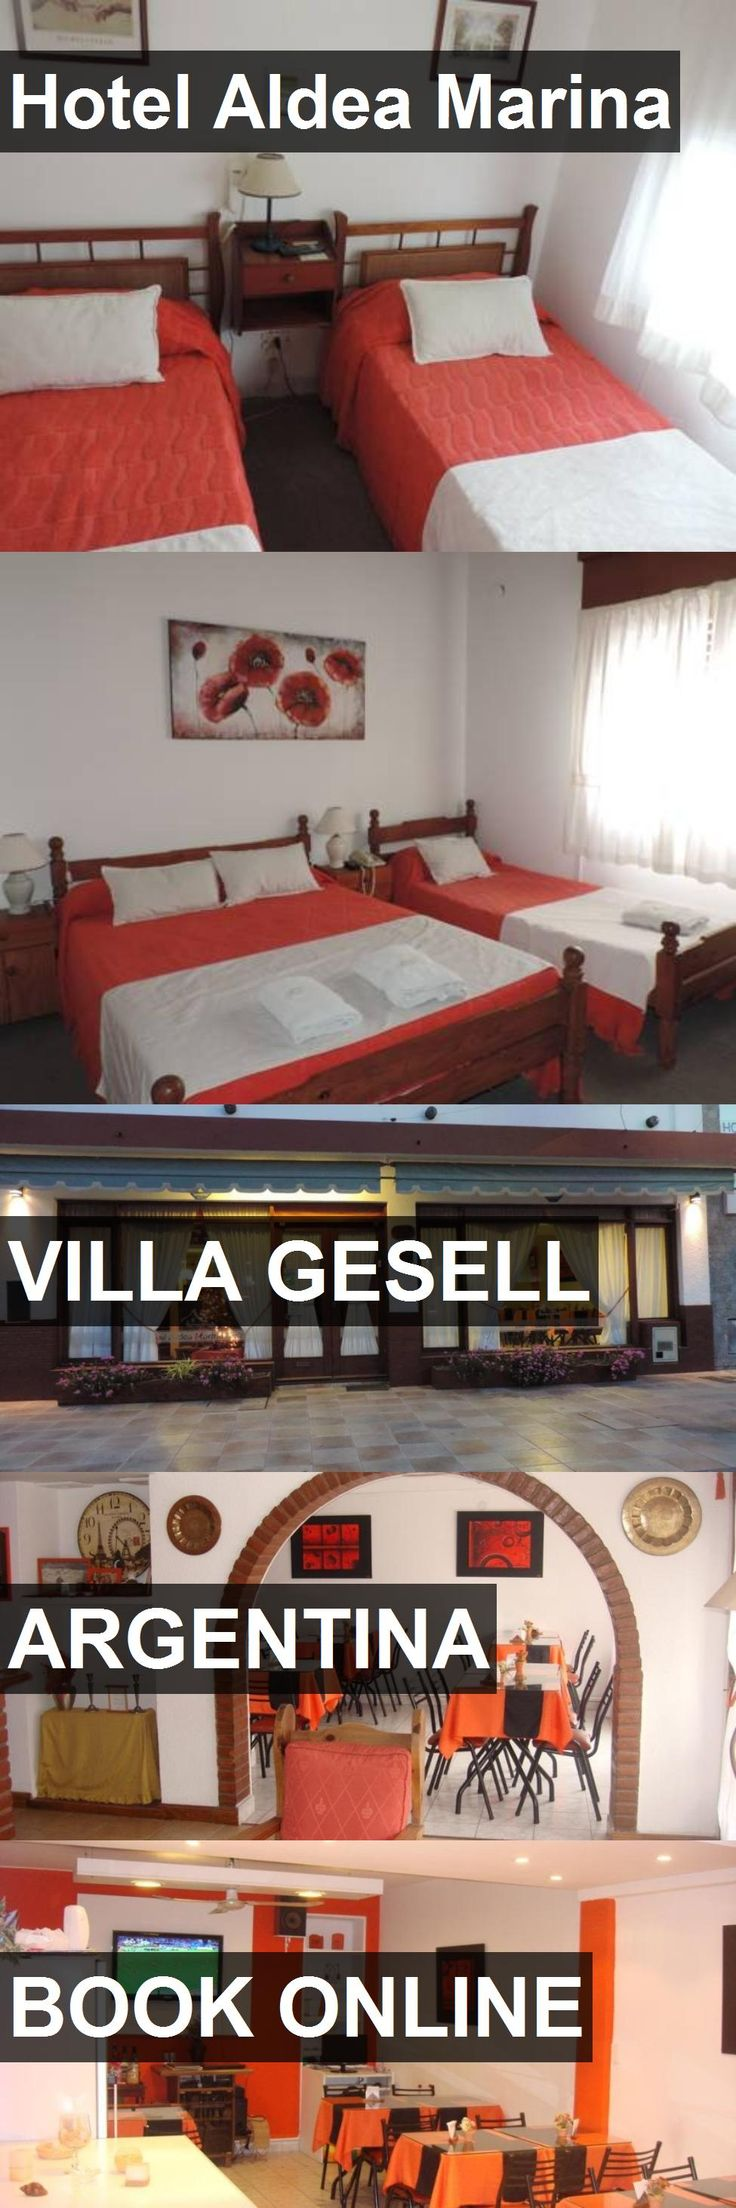 Hotel Aldea Marina in Villa Gesell, Argentina. For more information, photos, reviews and best prices please follow the link. #Argentina #VillaGesell #travel #vacation #hotel